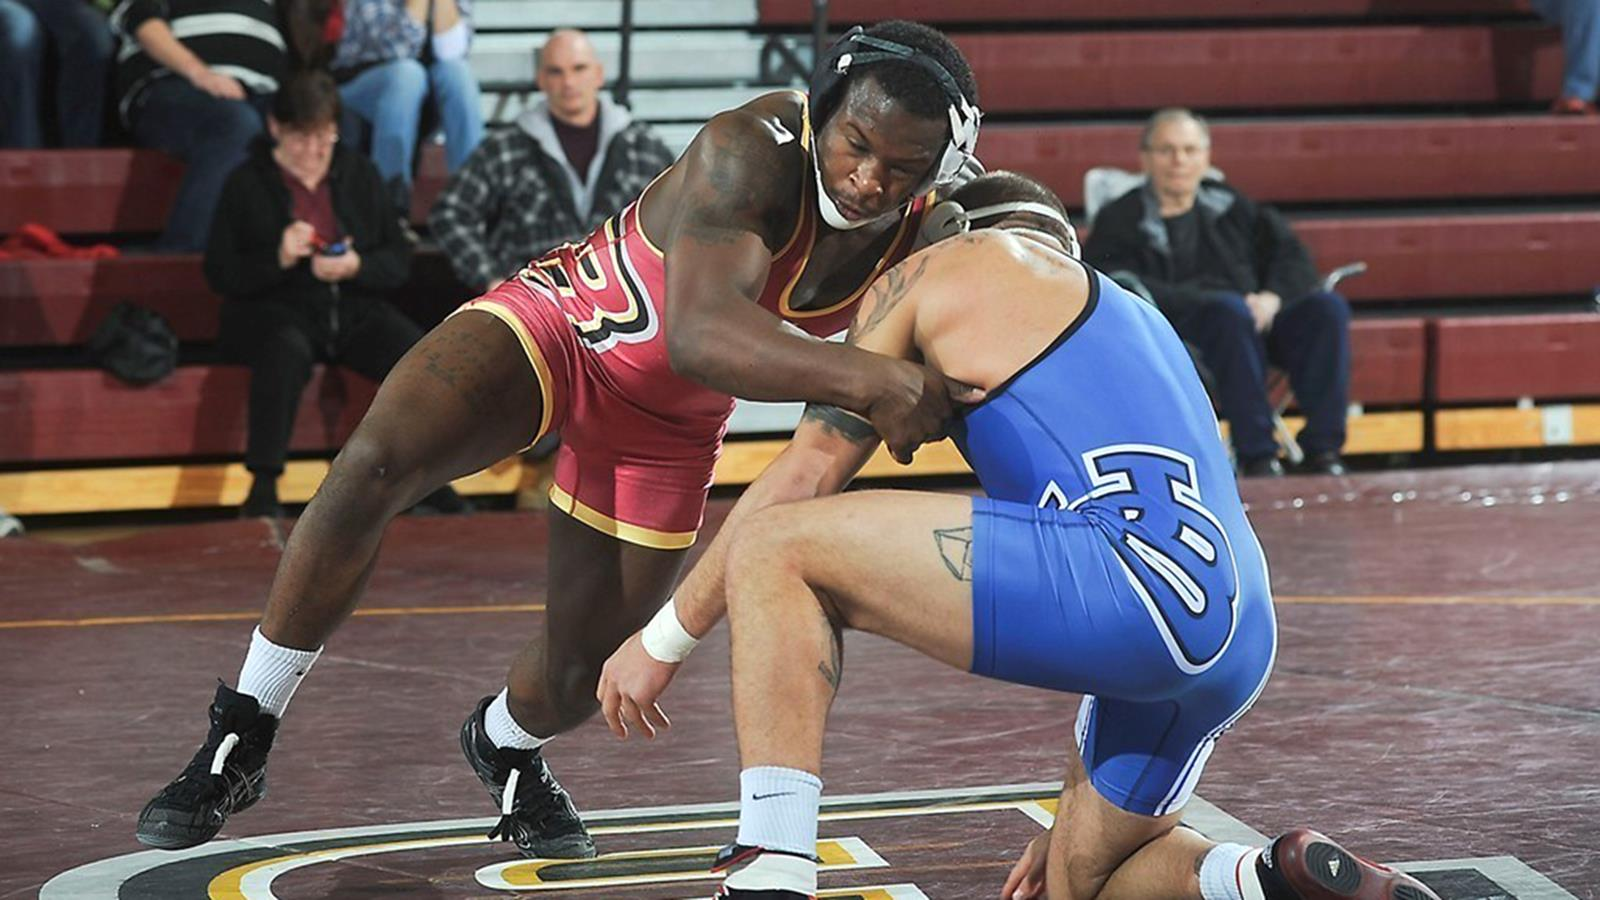 Former Wrestling Standout Rich Perry Injured In Training Accident